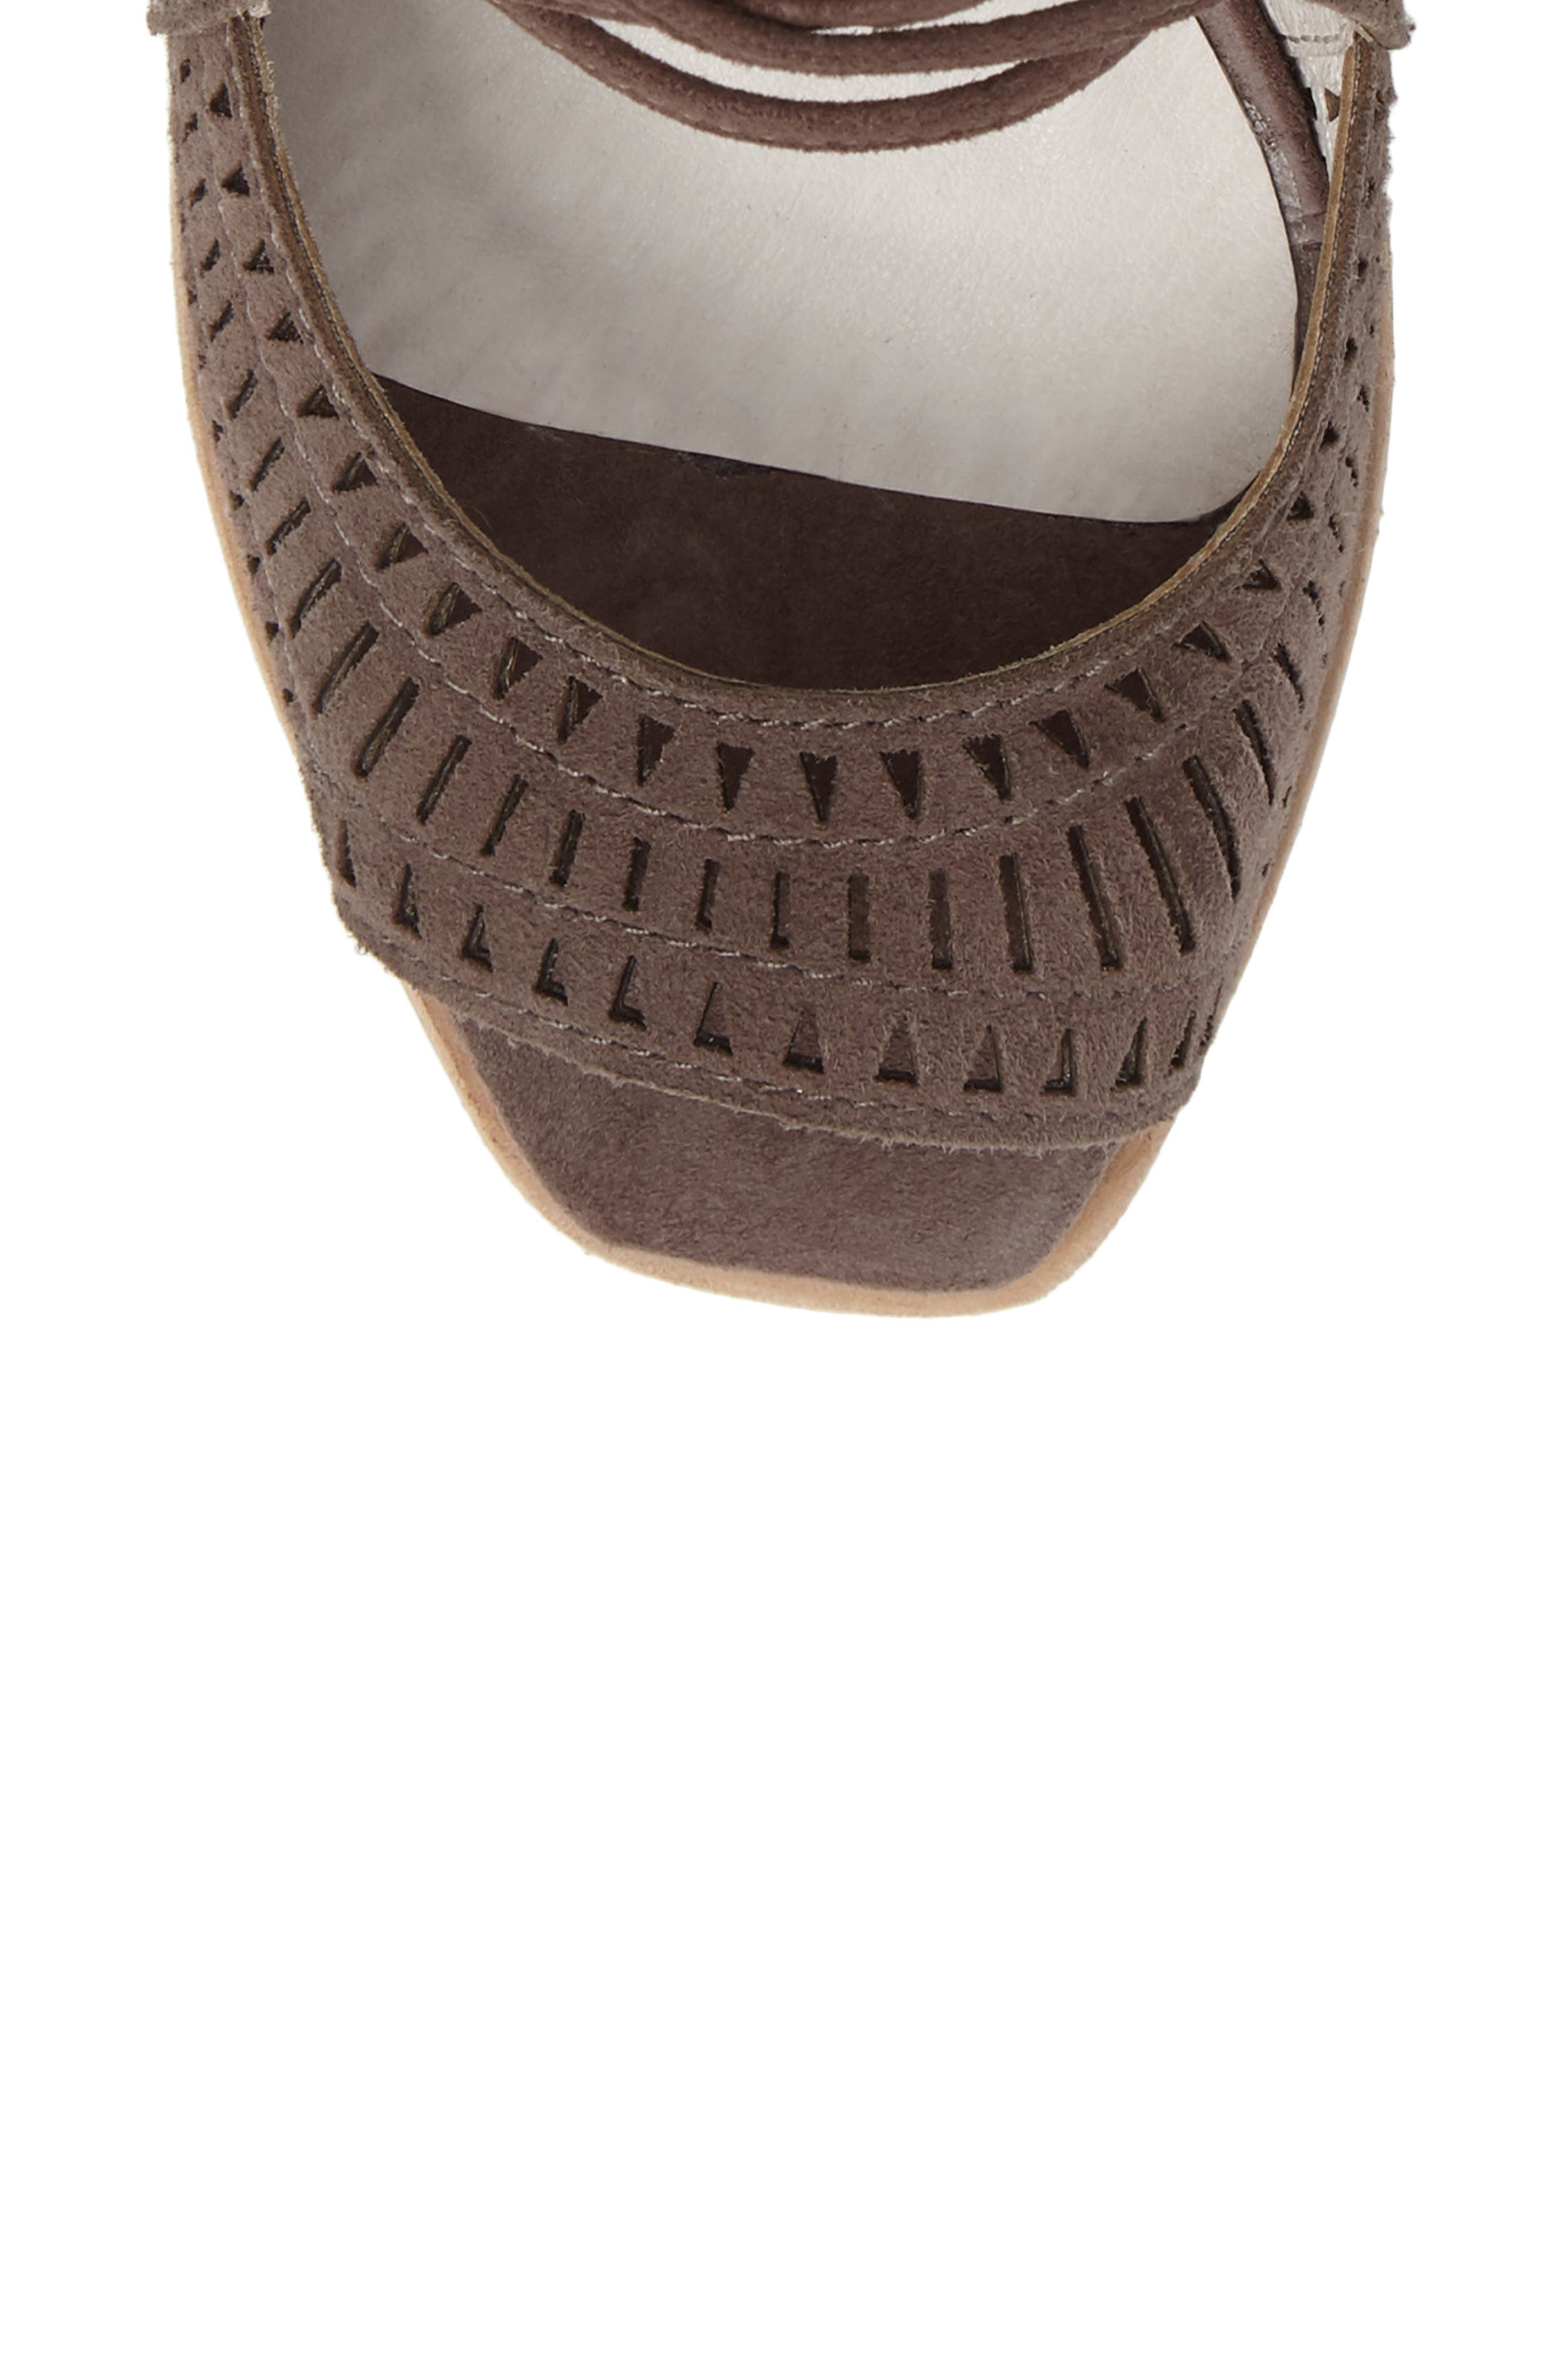 JEFFREY CAMPBELL, Rayos Perforated Wedge Sandal, Alternate thumbnail 5, color, 200